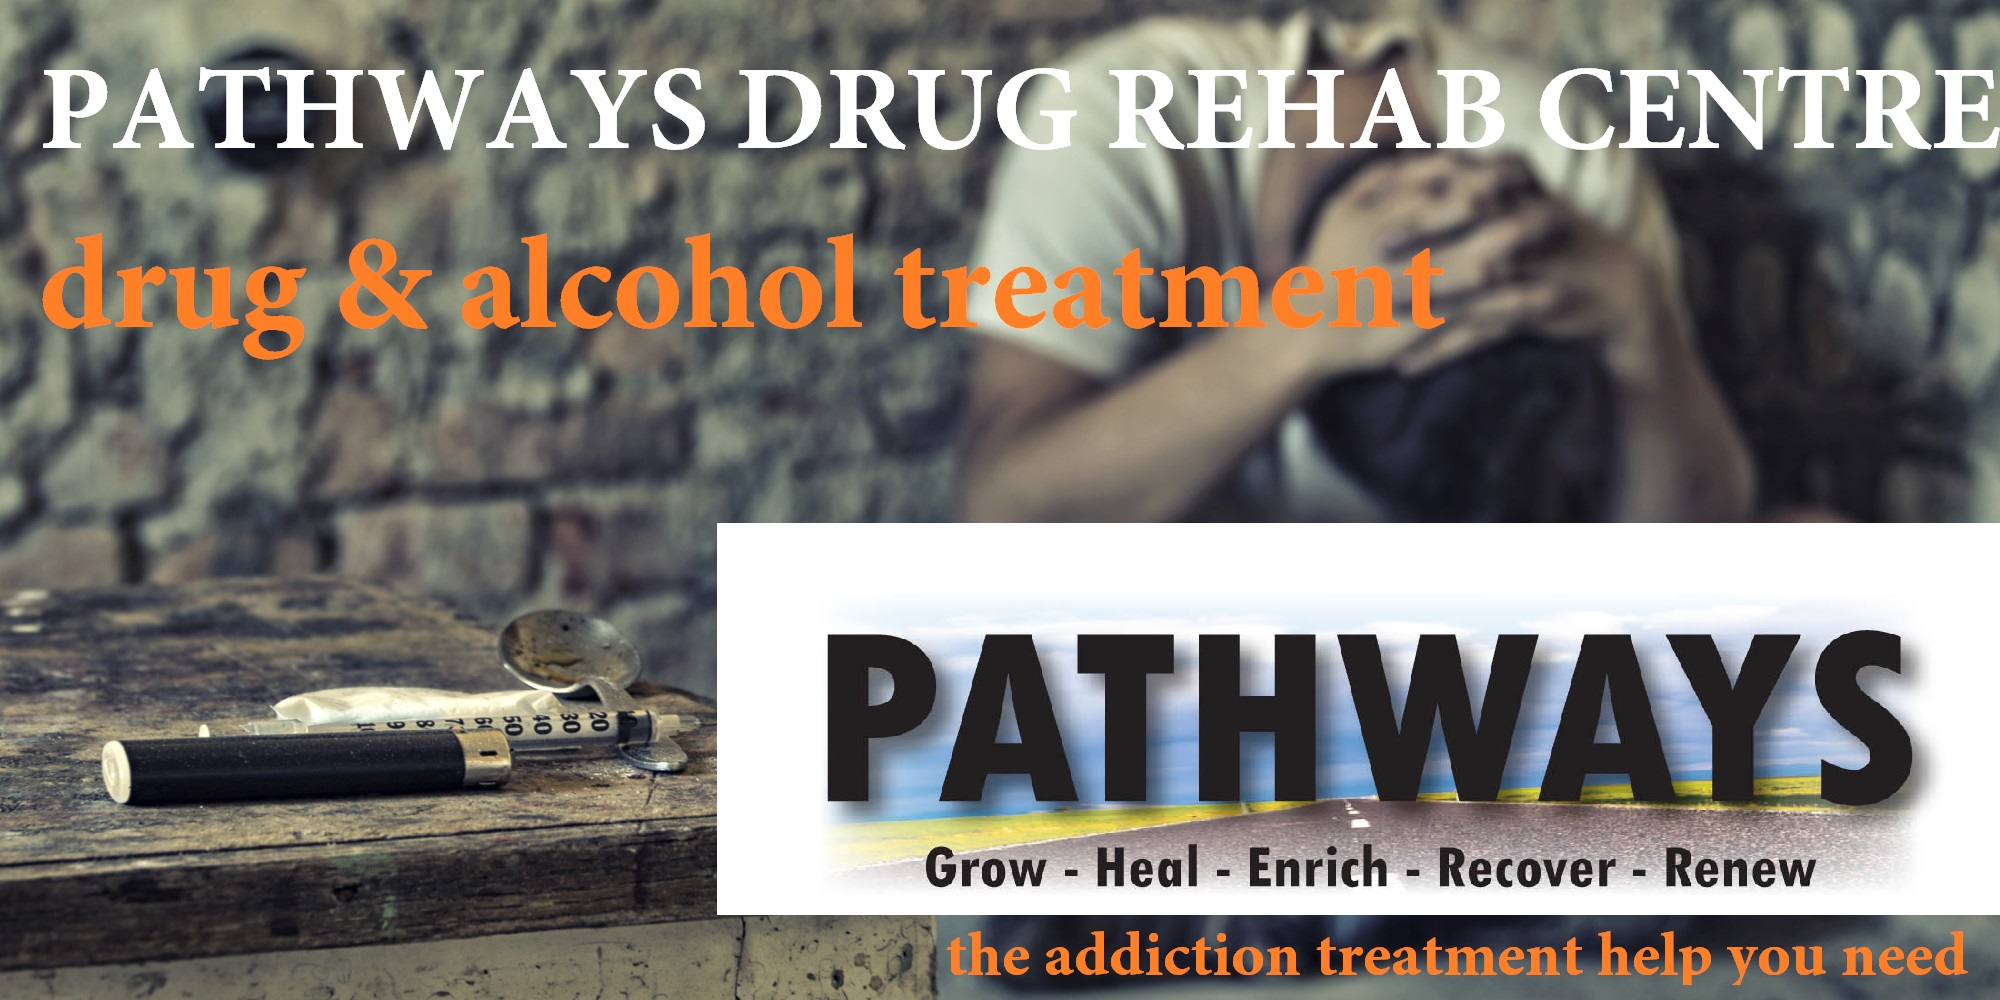 Cape Drug addiction rehab centre